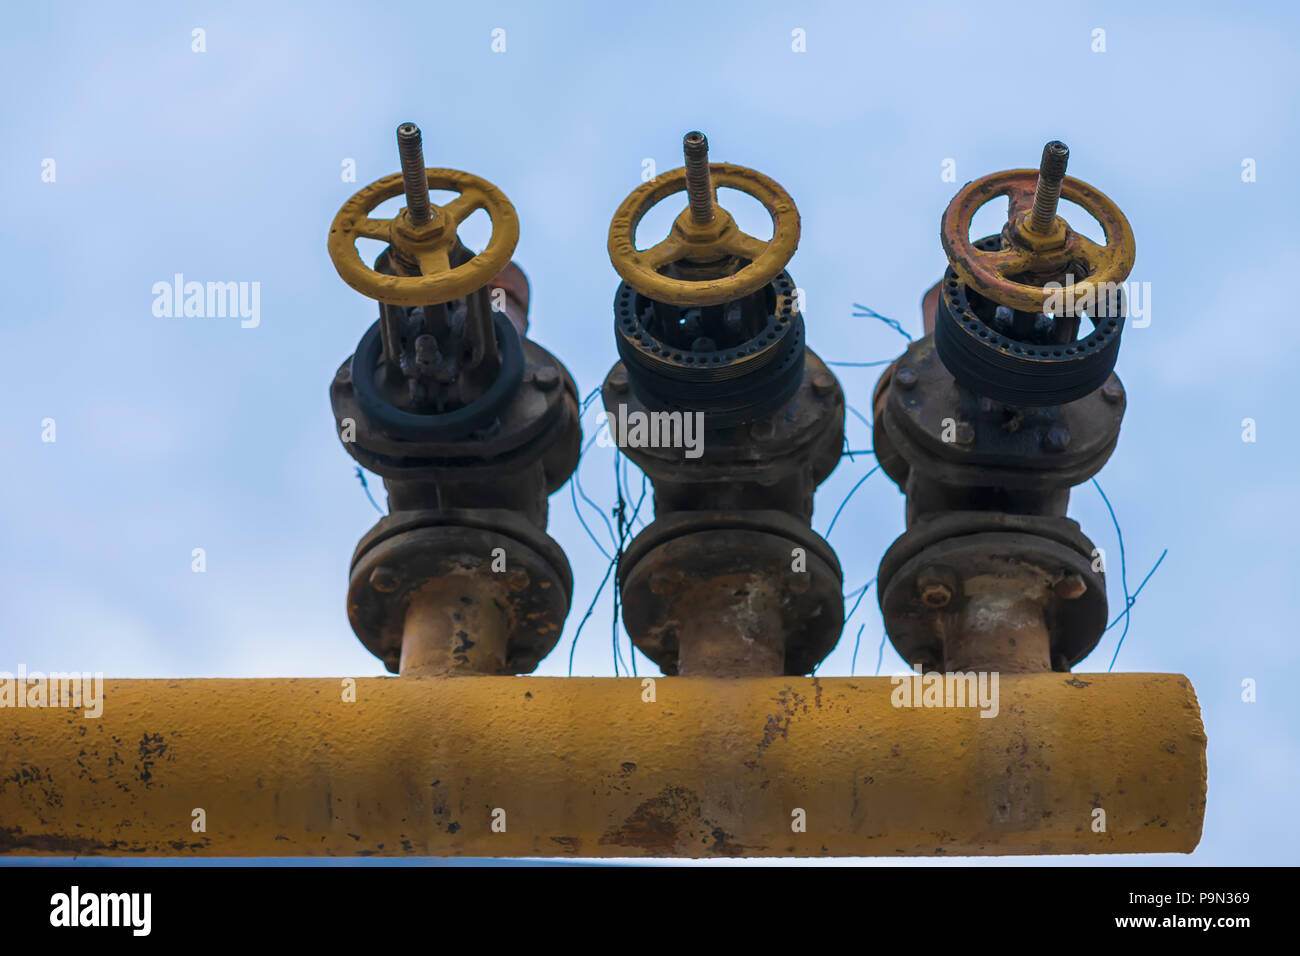 Three old iron pipe with valve, crane mechanism on sky background close-up Stock Photo